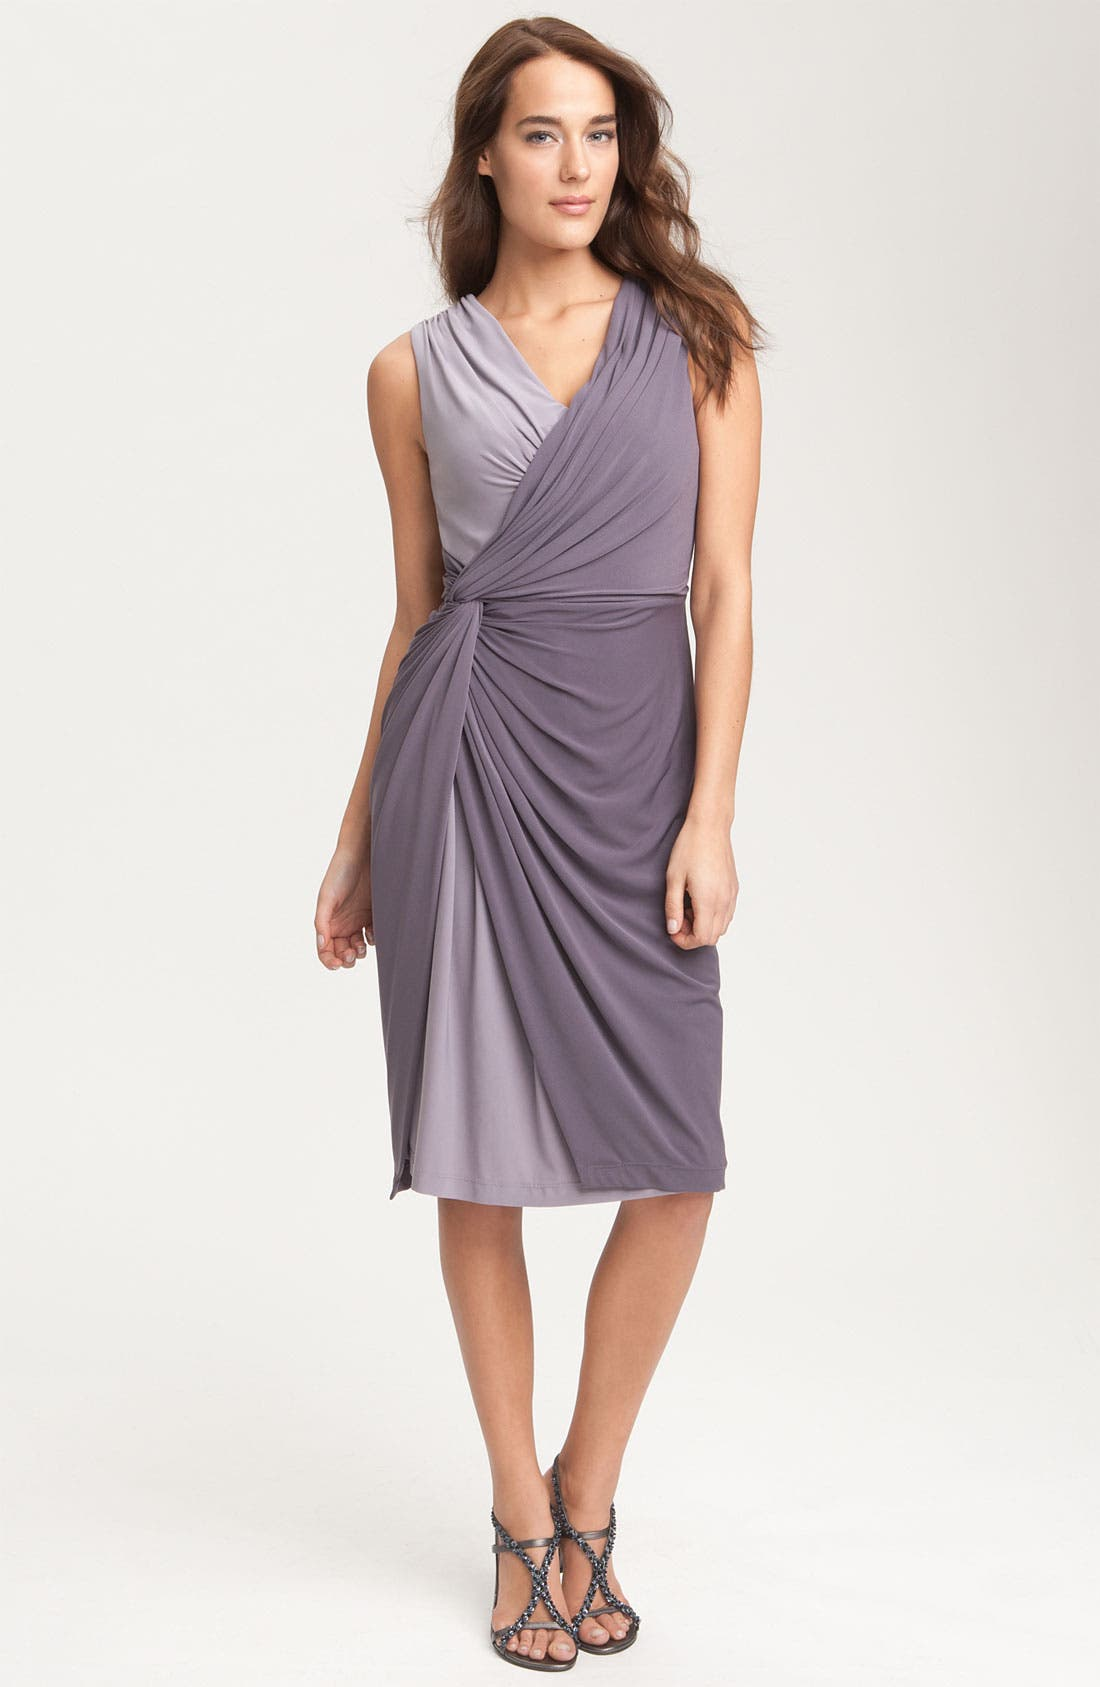 Main Image - Adrianna Papell Two Tone Overlay Jersey Dress